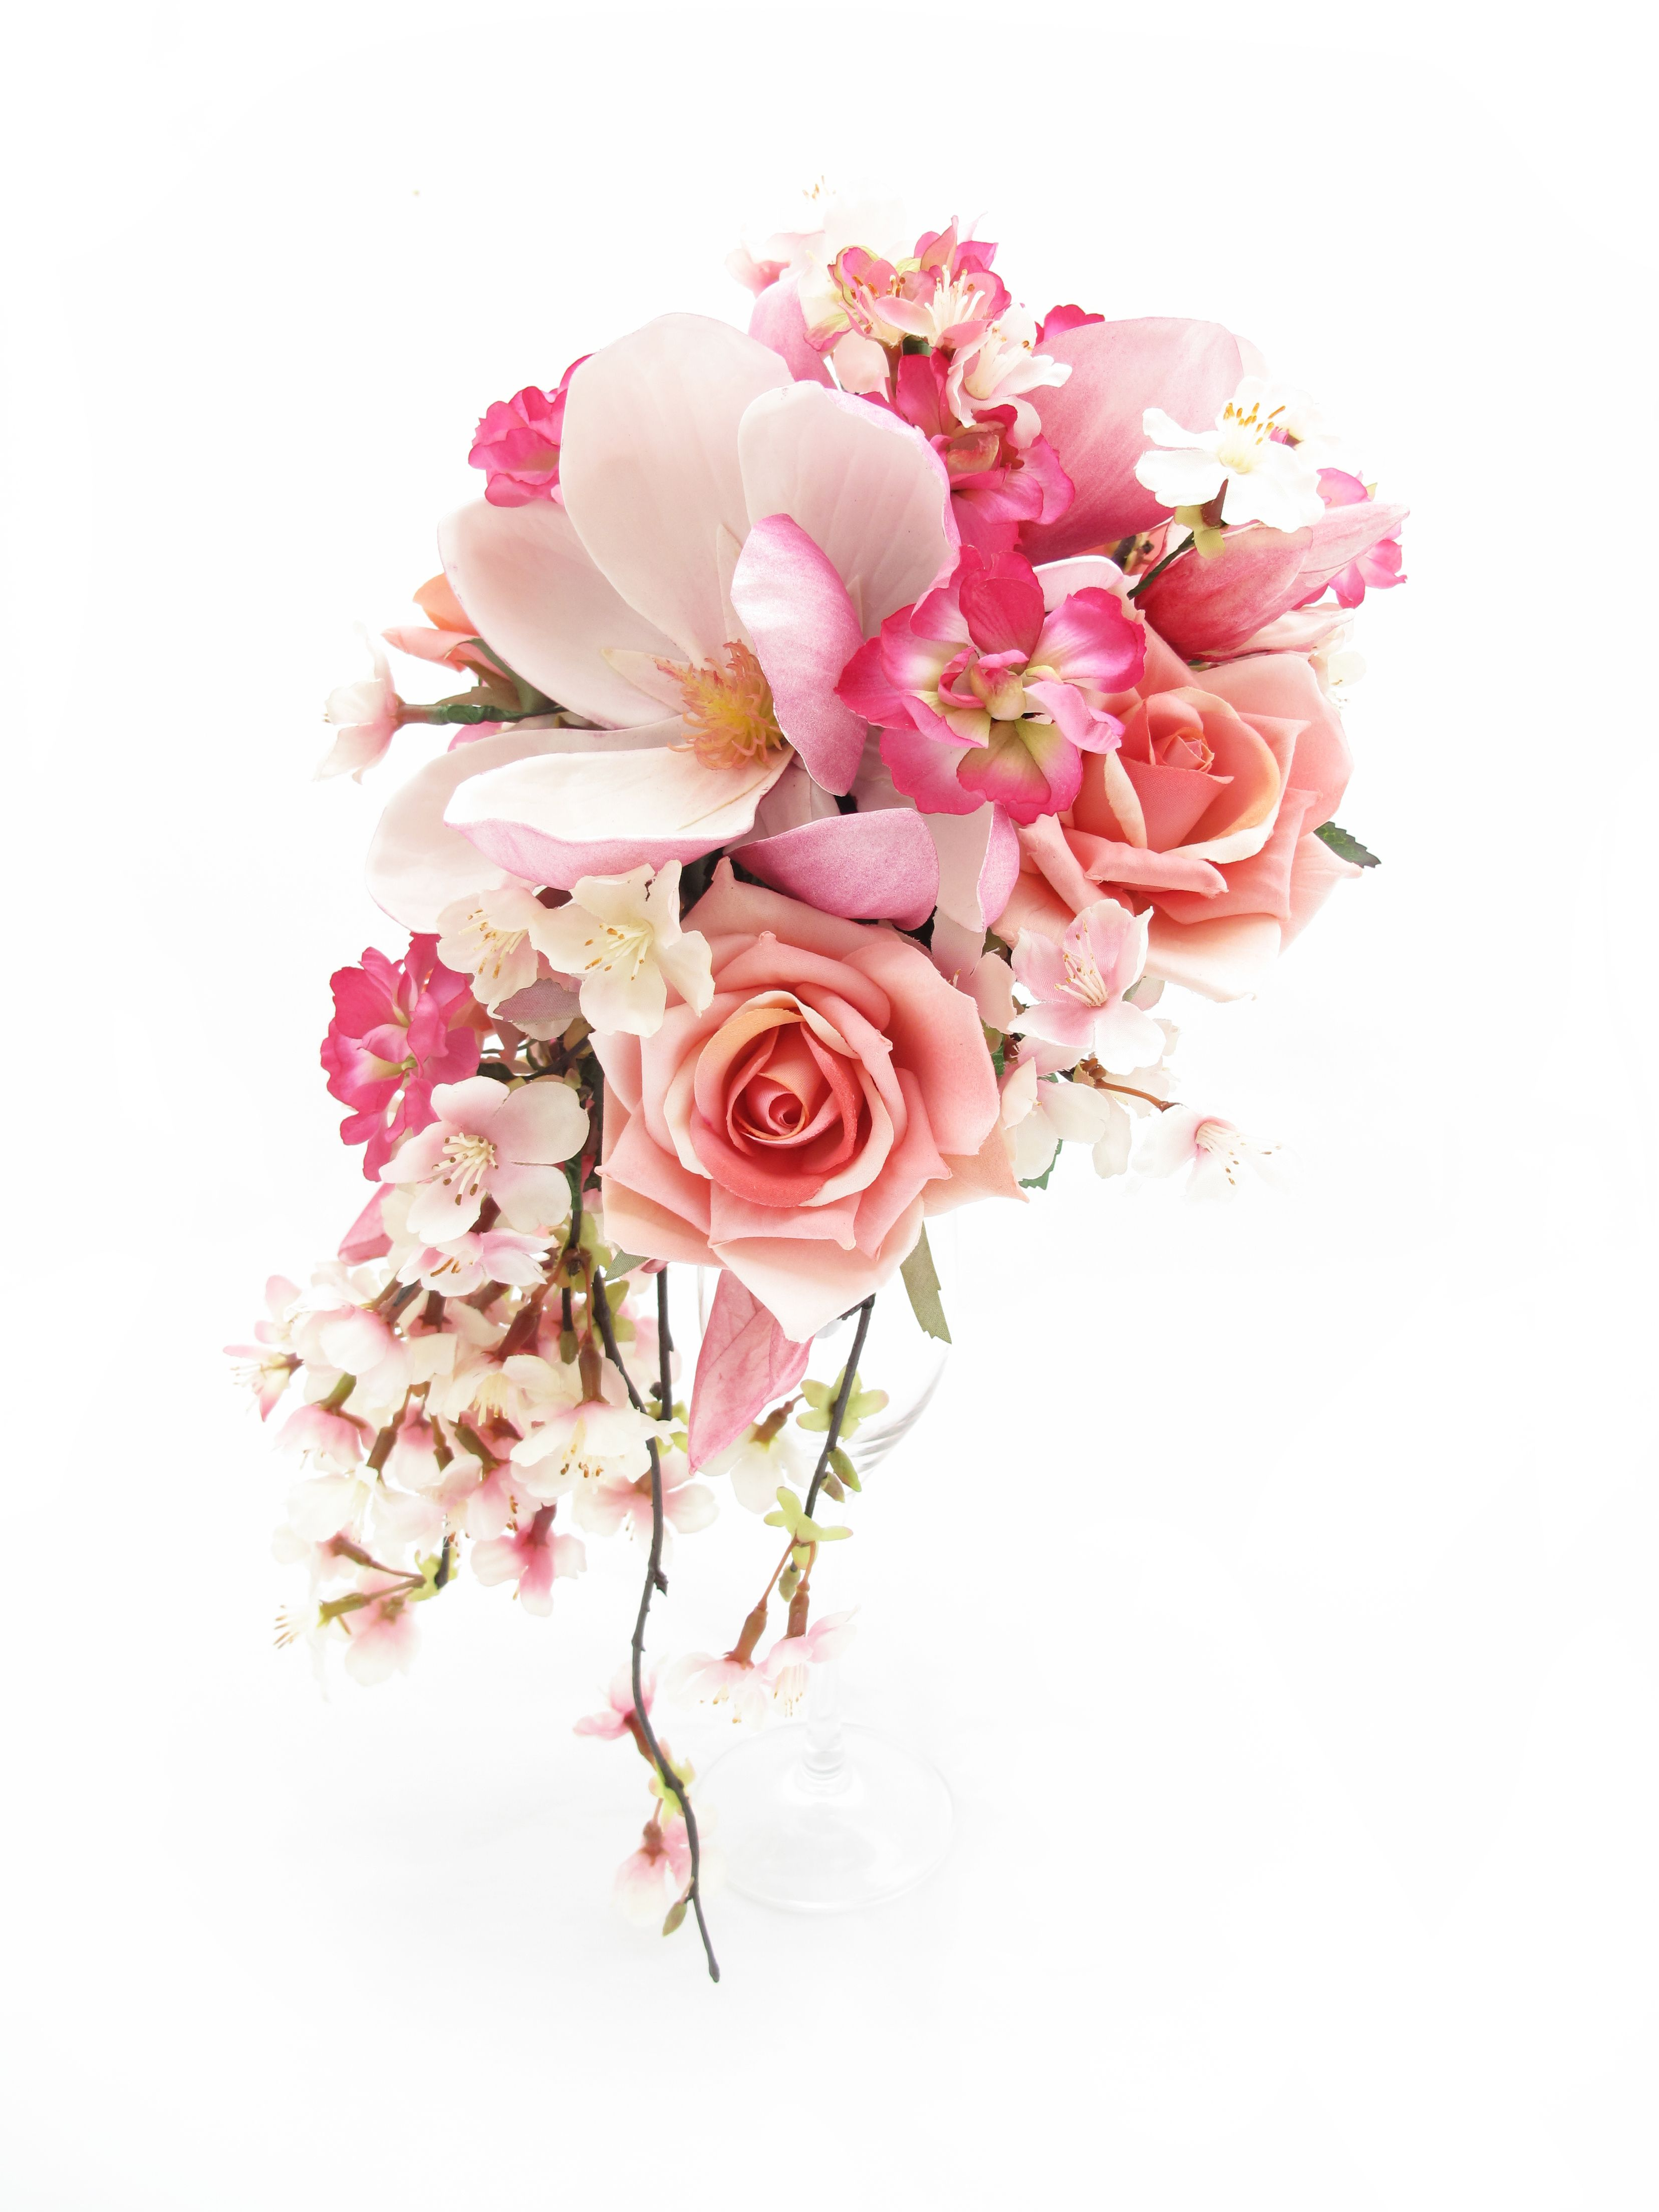 Trail bouquet of cherry blossom, pink roses, stock florets